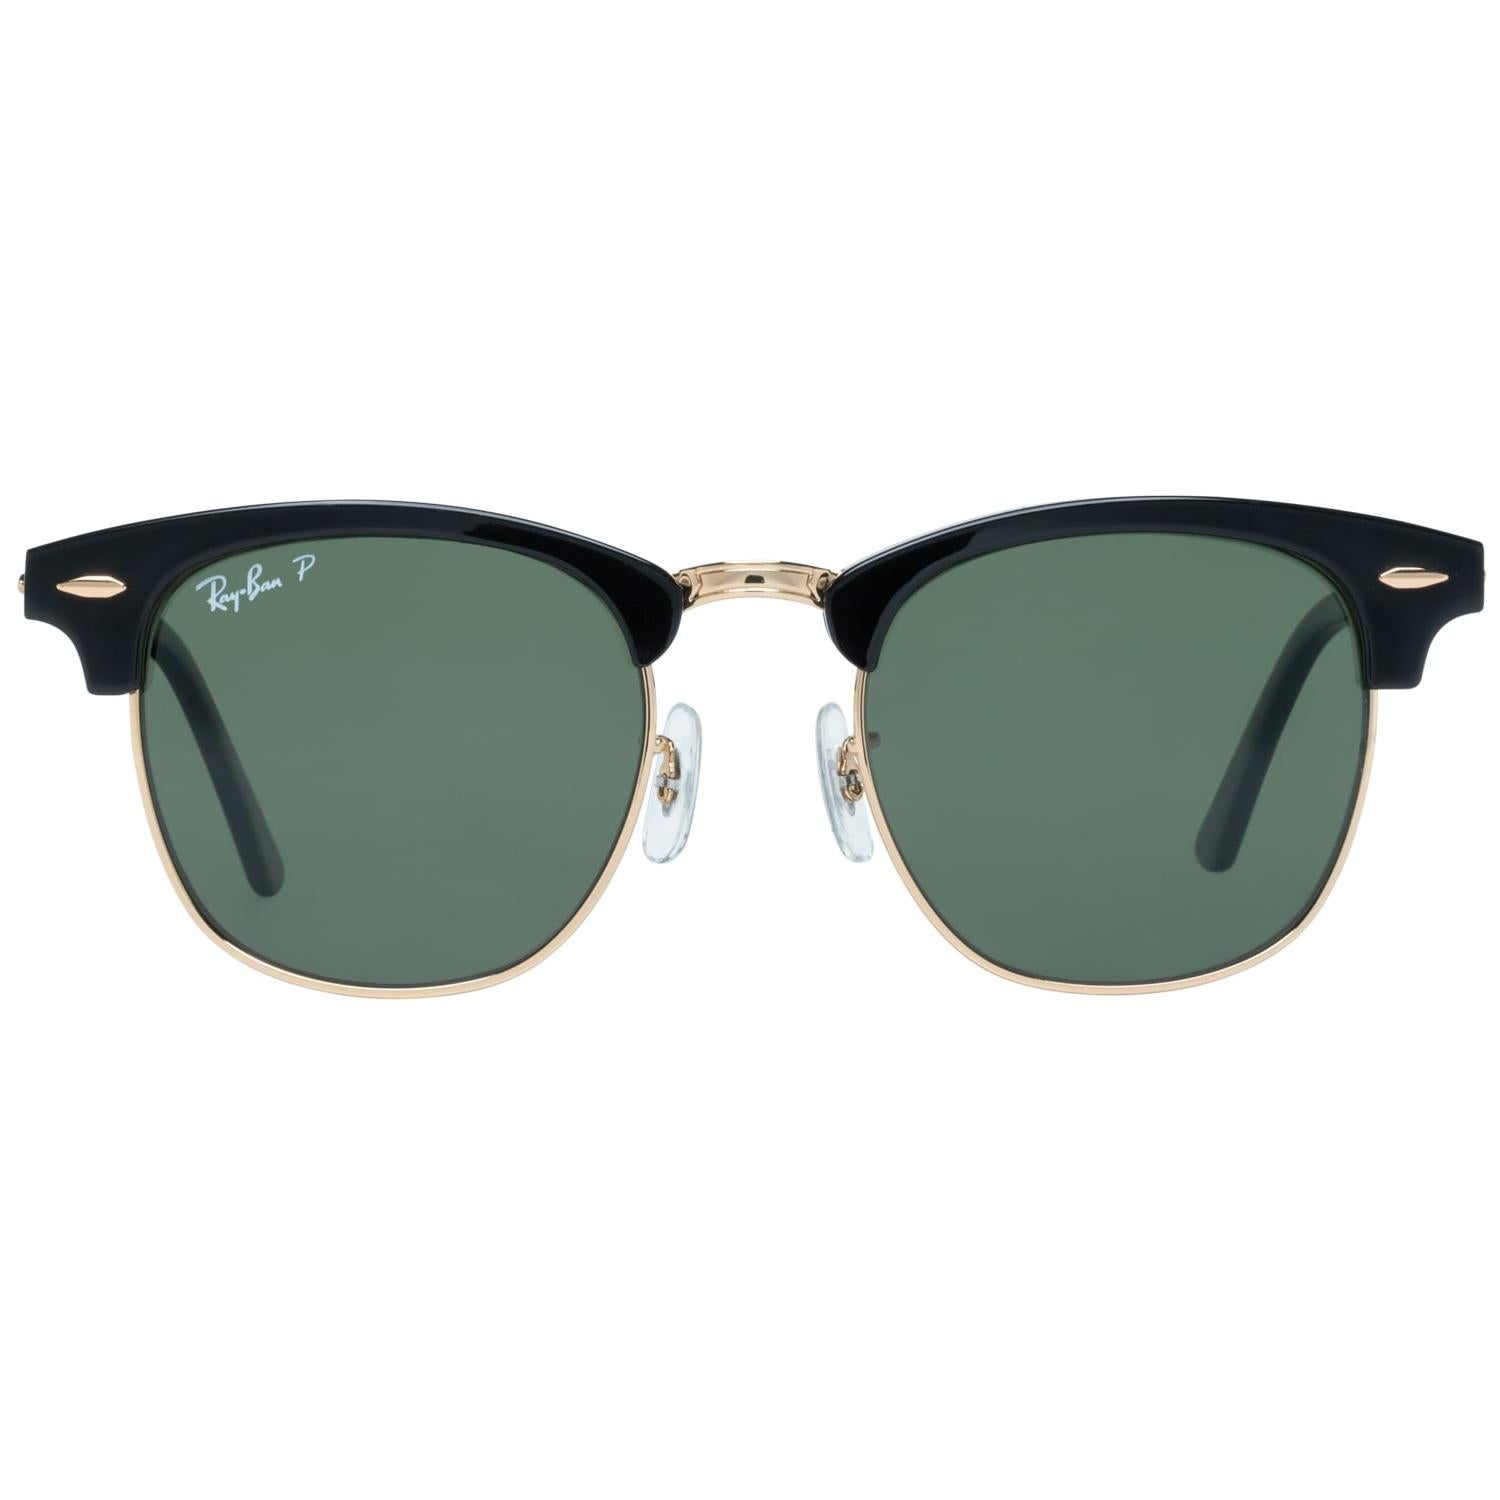 Ray-Ban Mint Unisex Black Sunglasses RB3016 901/58 51 51-21-144 mm